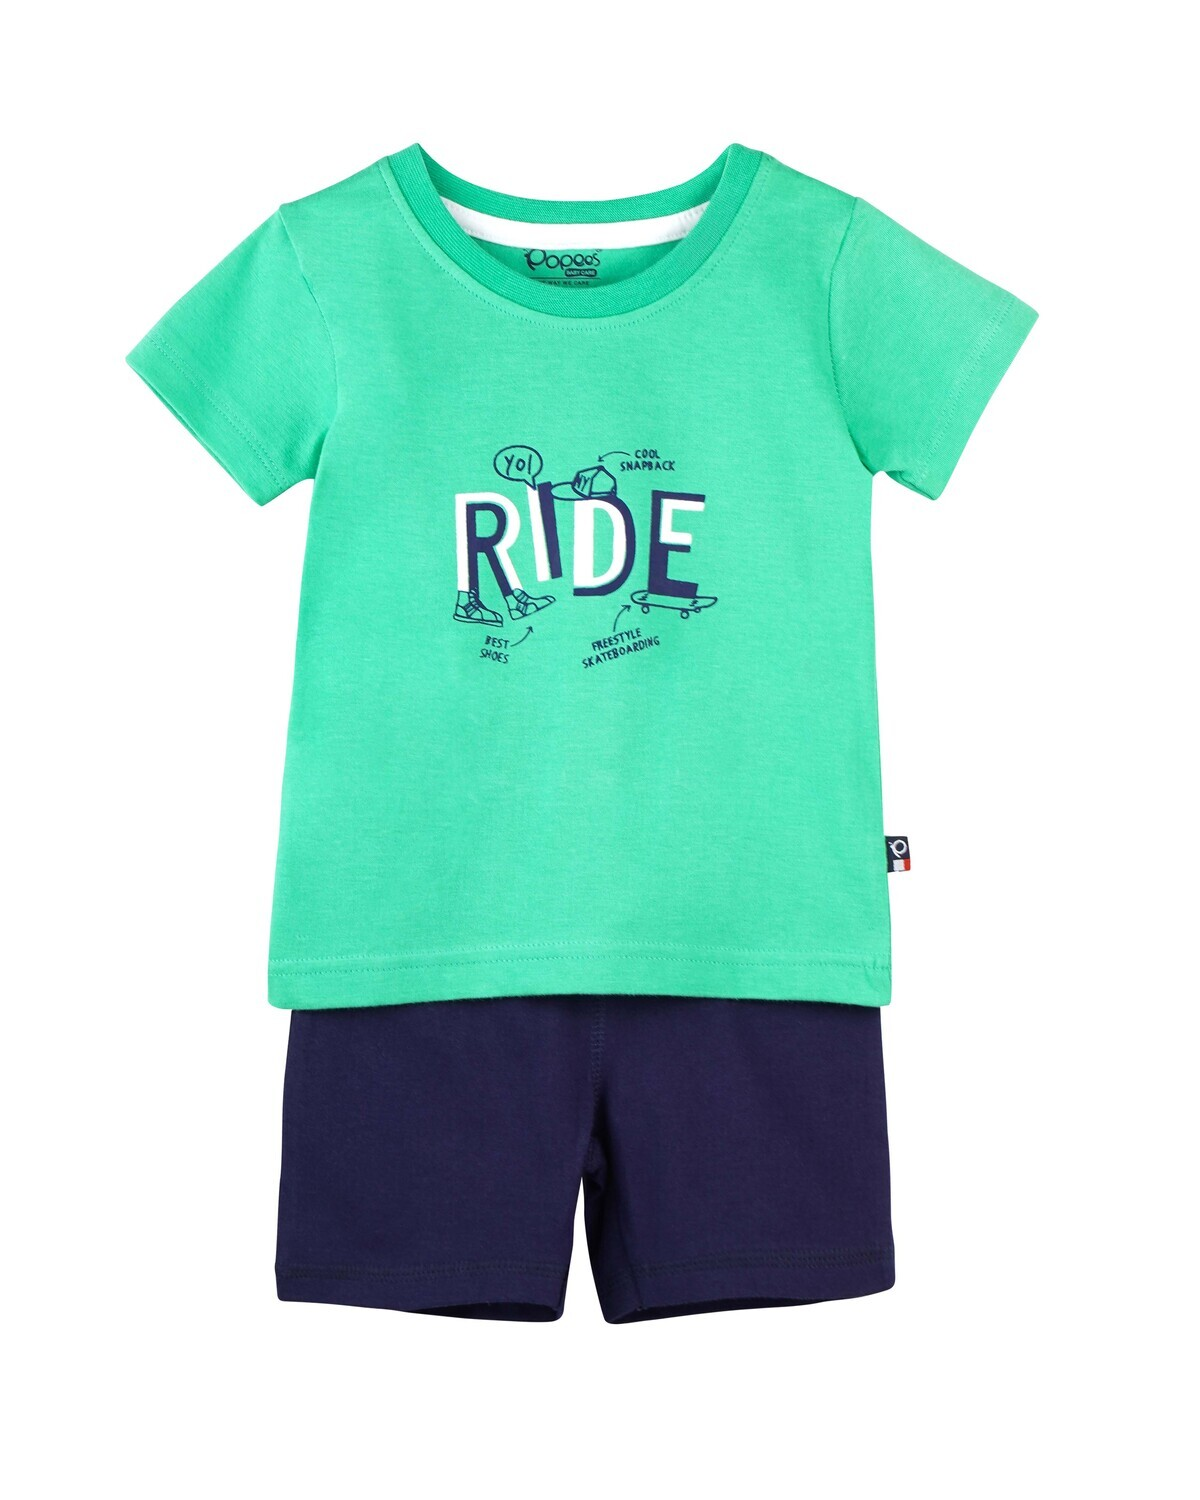 CADOC SPRING BOUQUET Half Sleeve Top and Shorts for Baby Boys